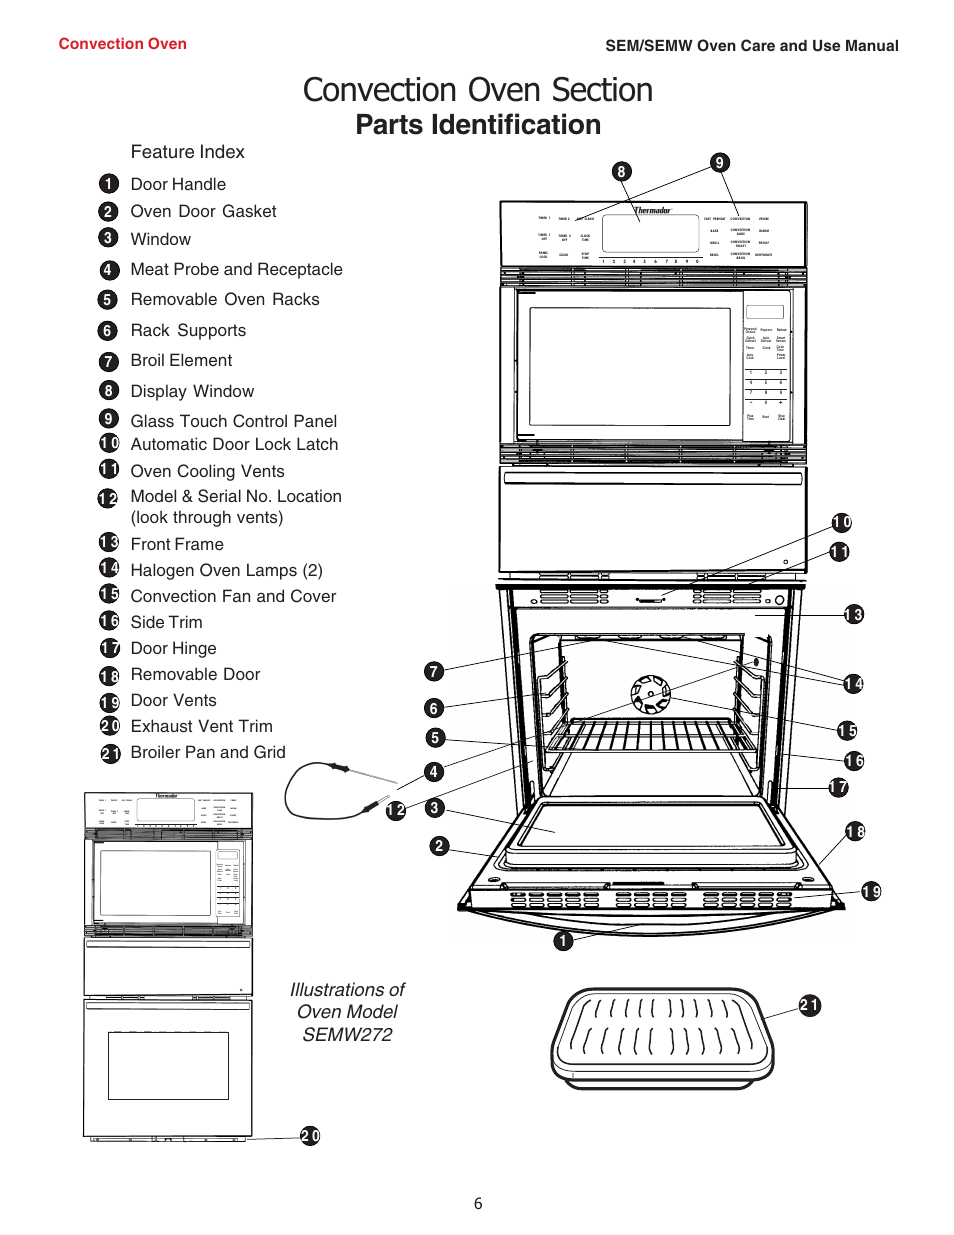 parts identification illustrations of oven model semw272 feature rh manualsdir com thermador dwhd640jfp user manual thermador mces user manual